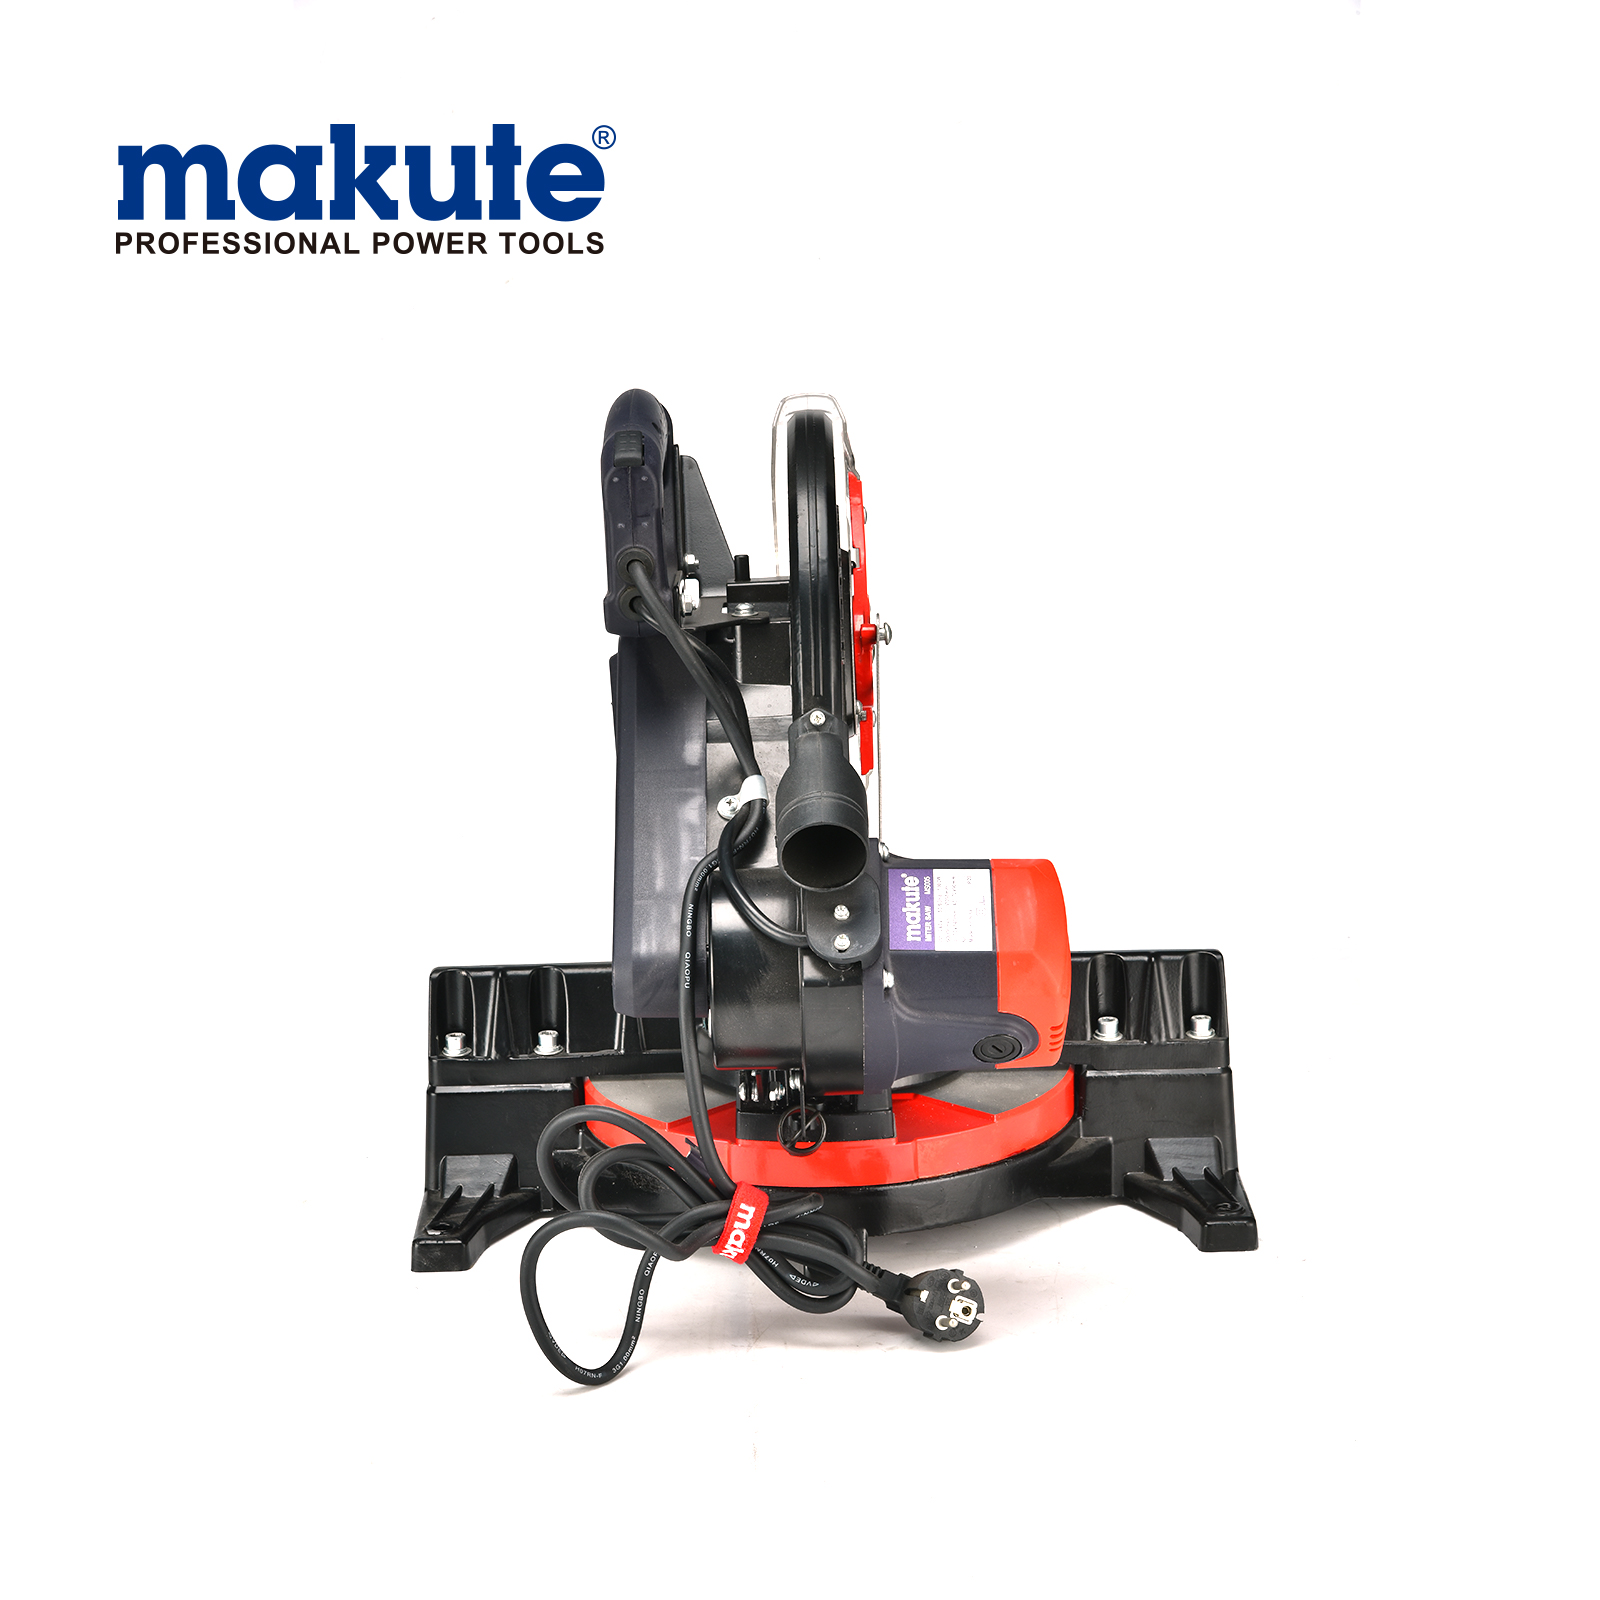 MAKUTE custom professional 255mm top power tools miter saw